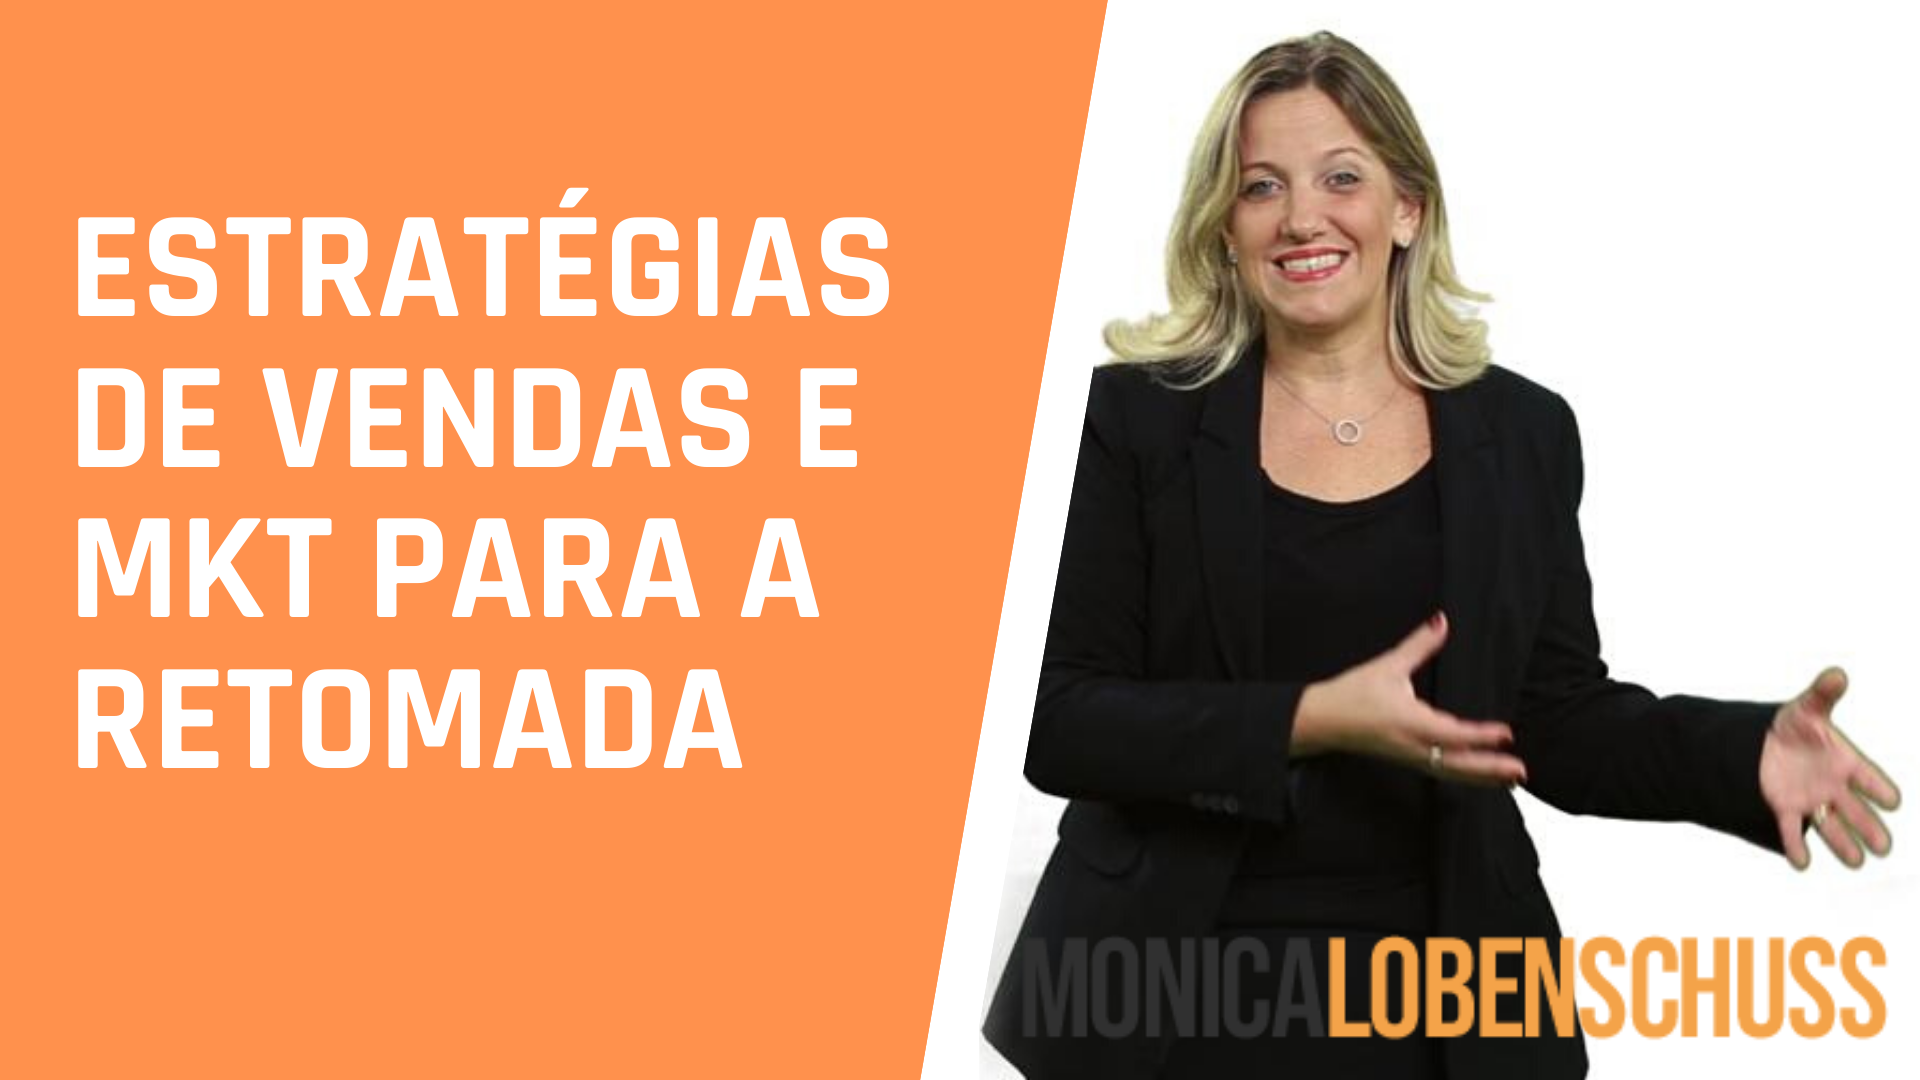 ESTRATÉGIAS DE MARKETING E VENDAS PARA A RETOMADA